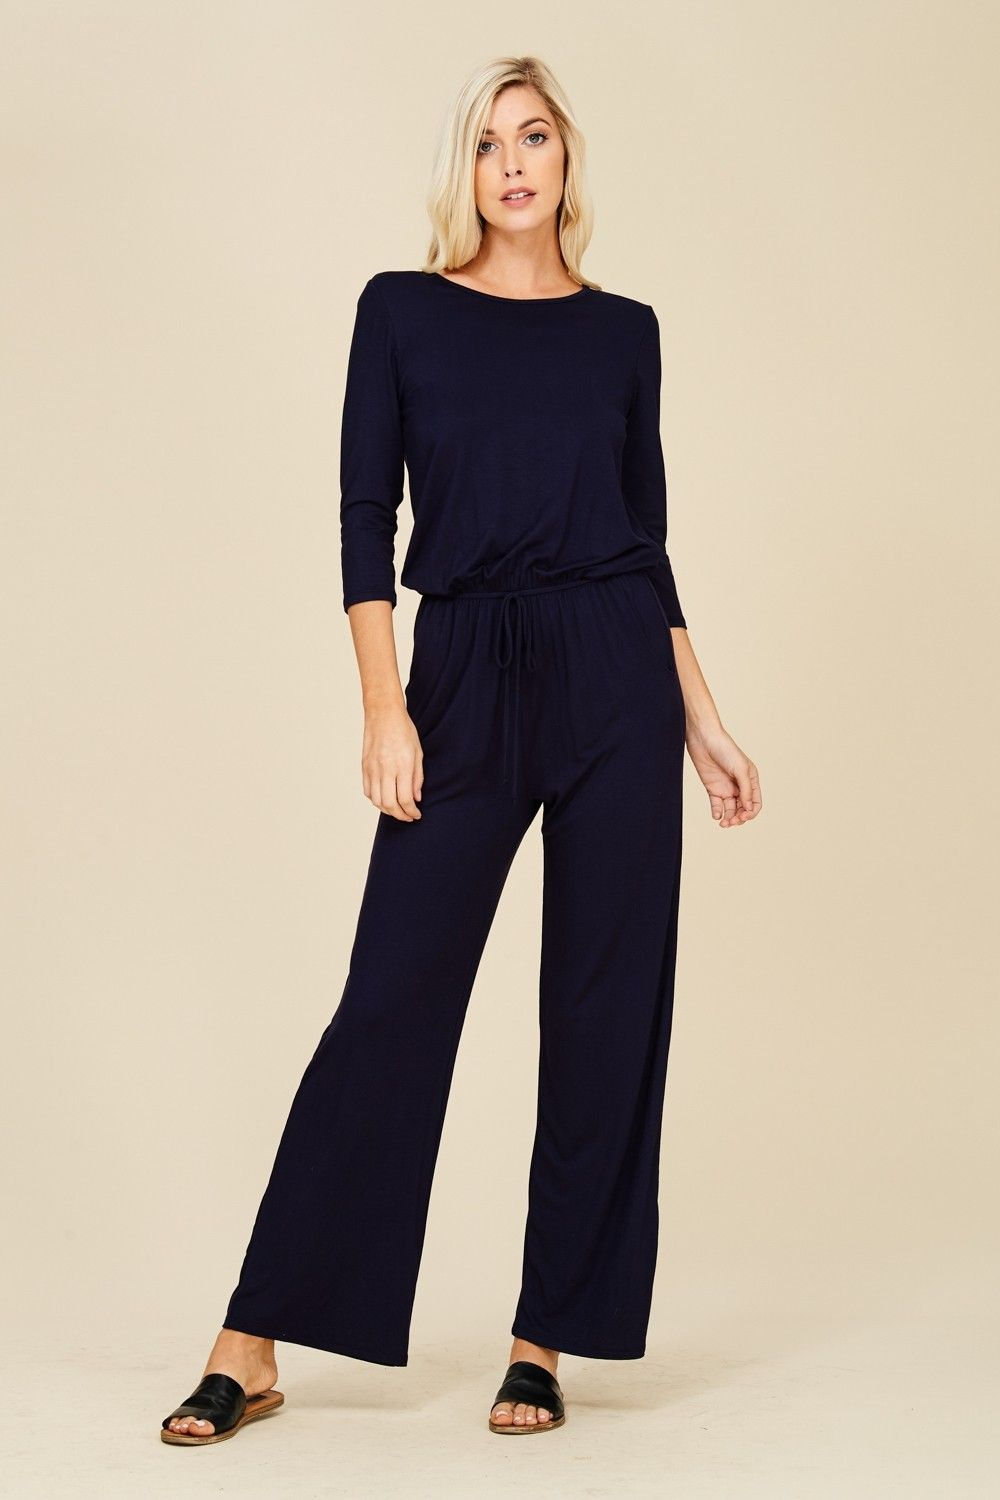 58c87e1e221 Jumpsuit with Elastic Waist Style  J8057 Knit jumpsuit featuring solid